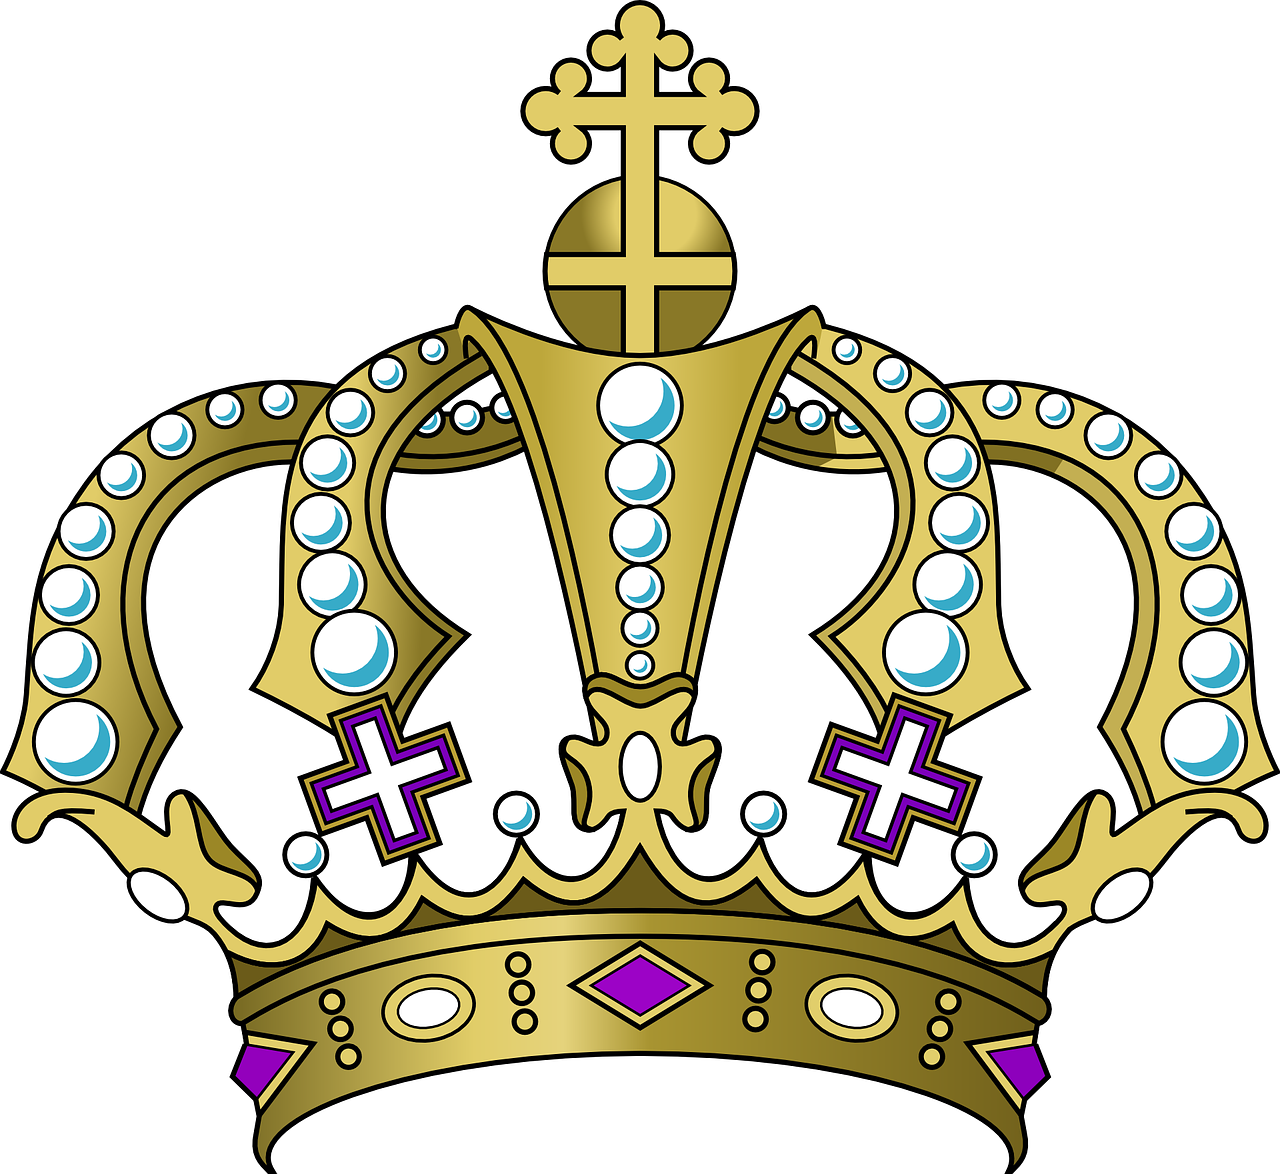 Clipart brons crown clip transparent Crown King Royal Prince History PNG Image - Picpng clip transparent